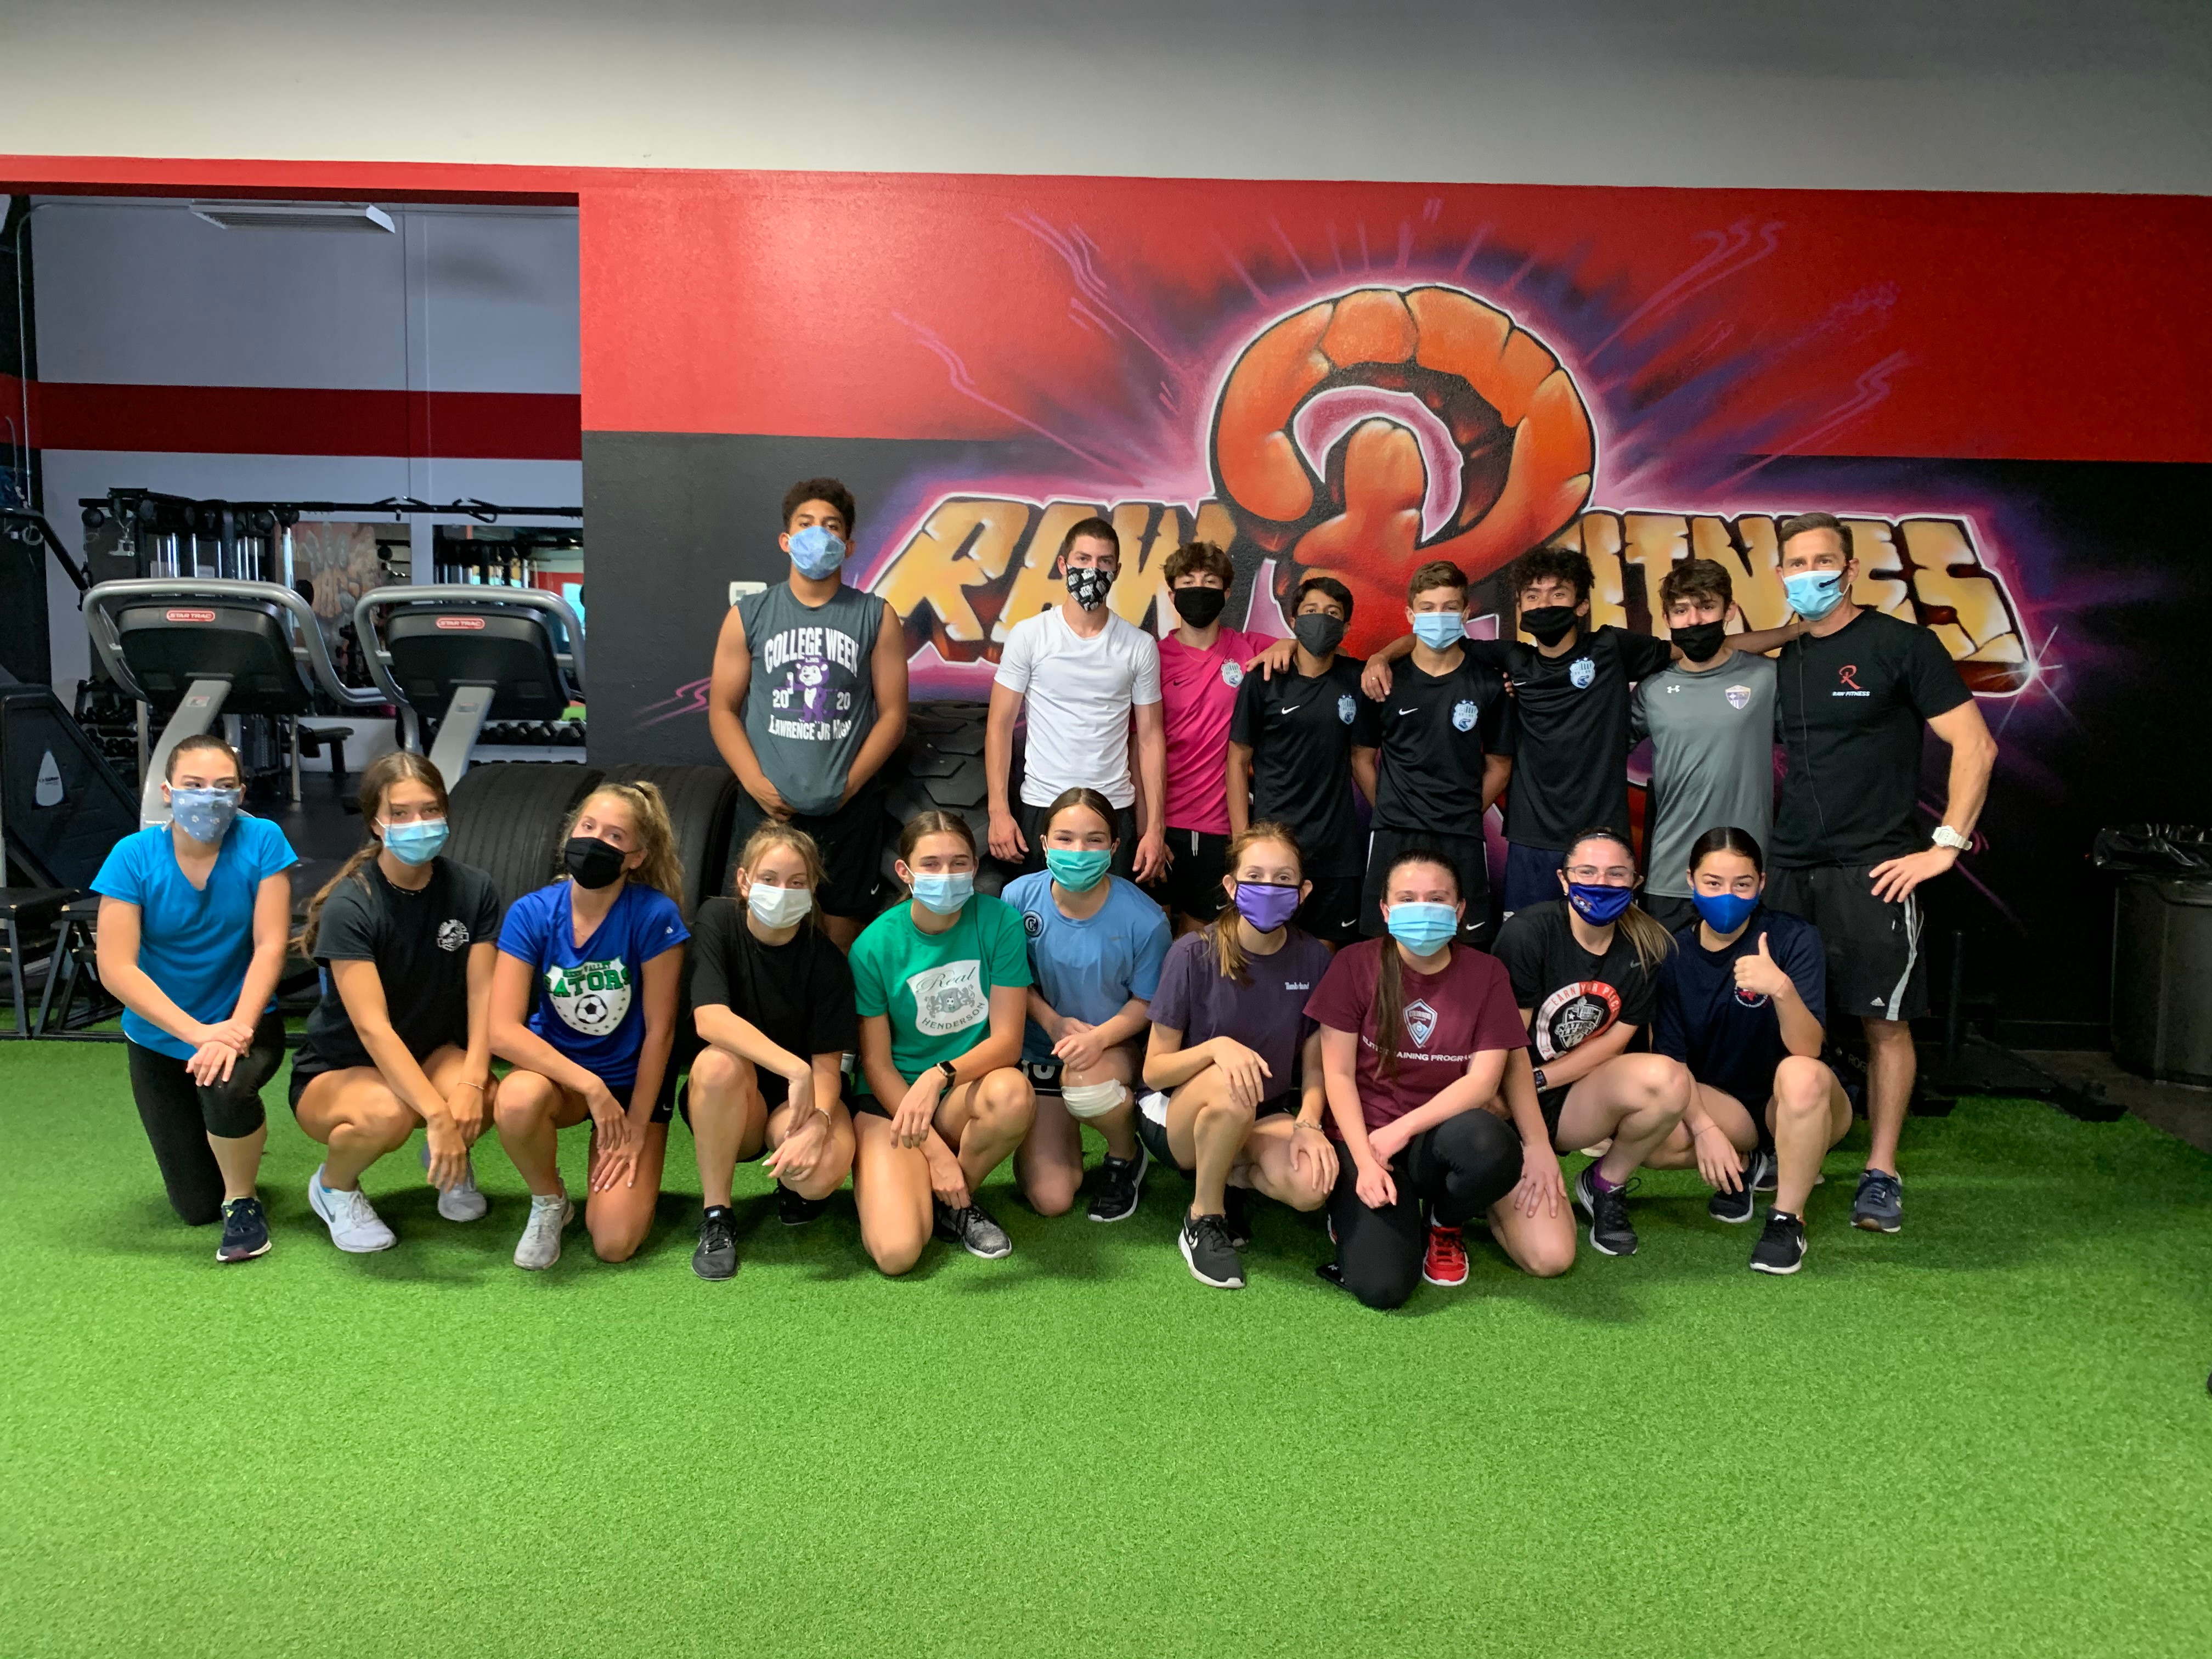 HS Athlete Conditioning - 10 Class Pack